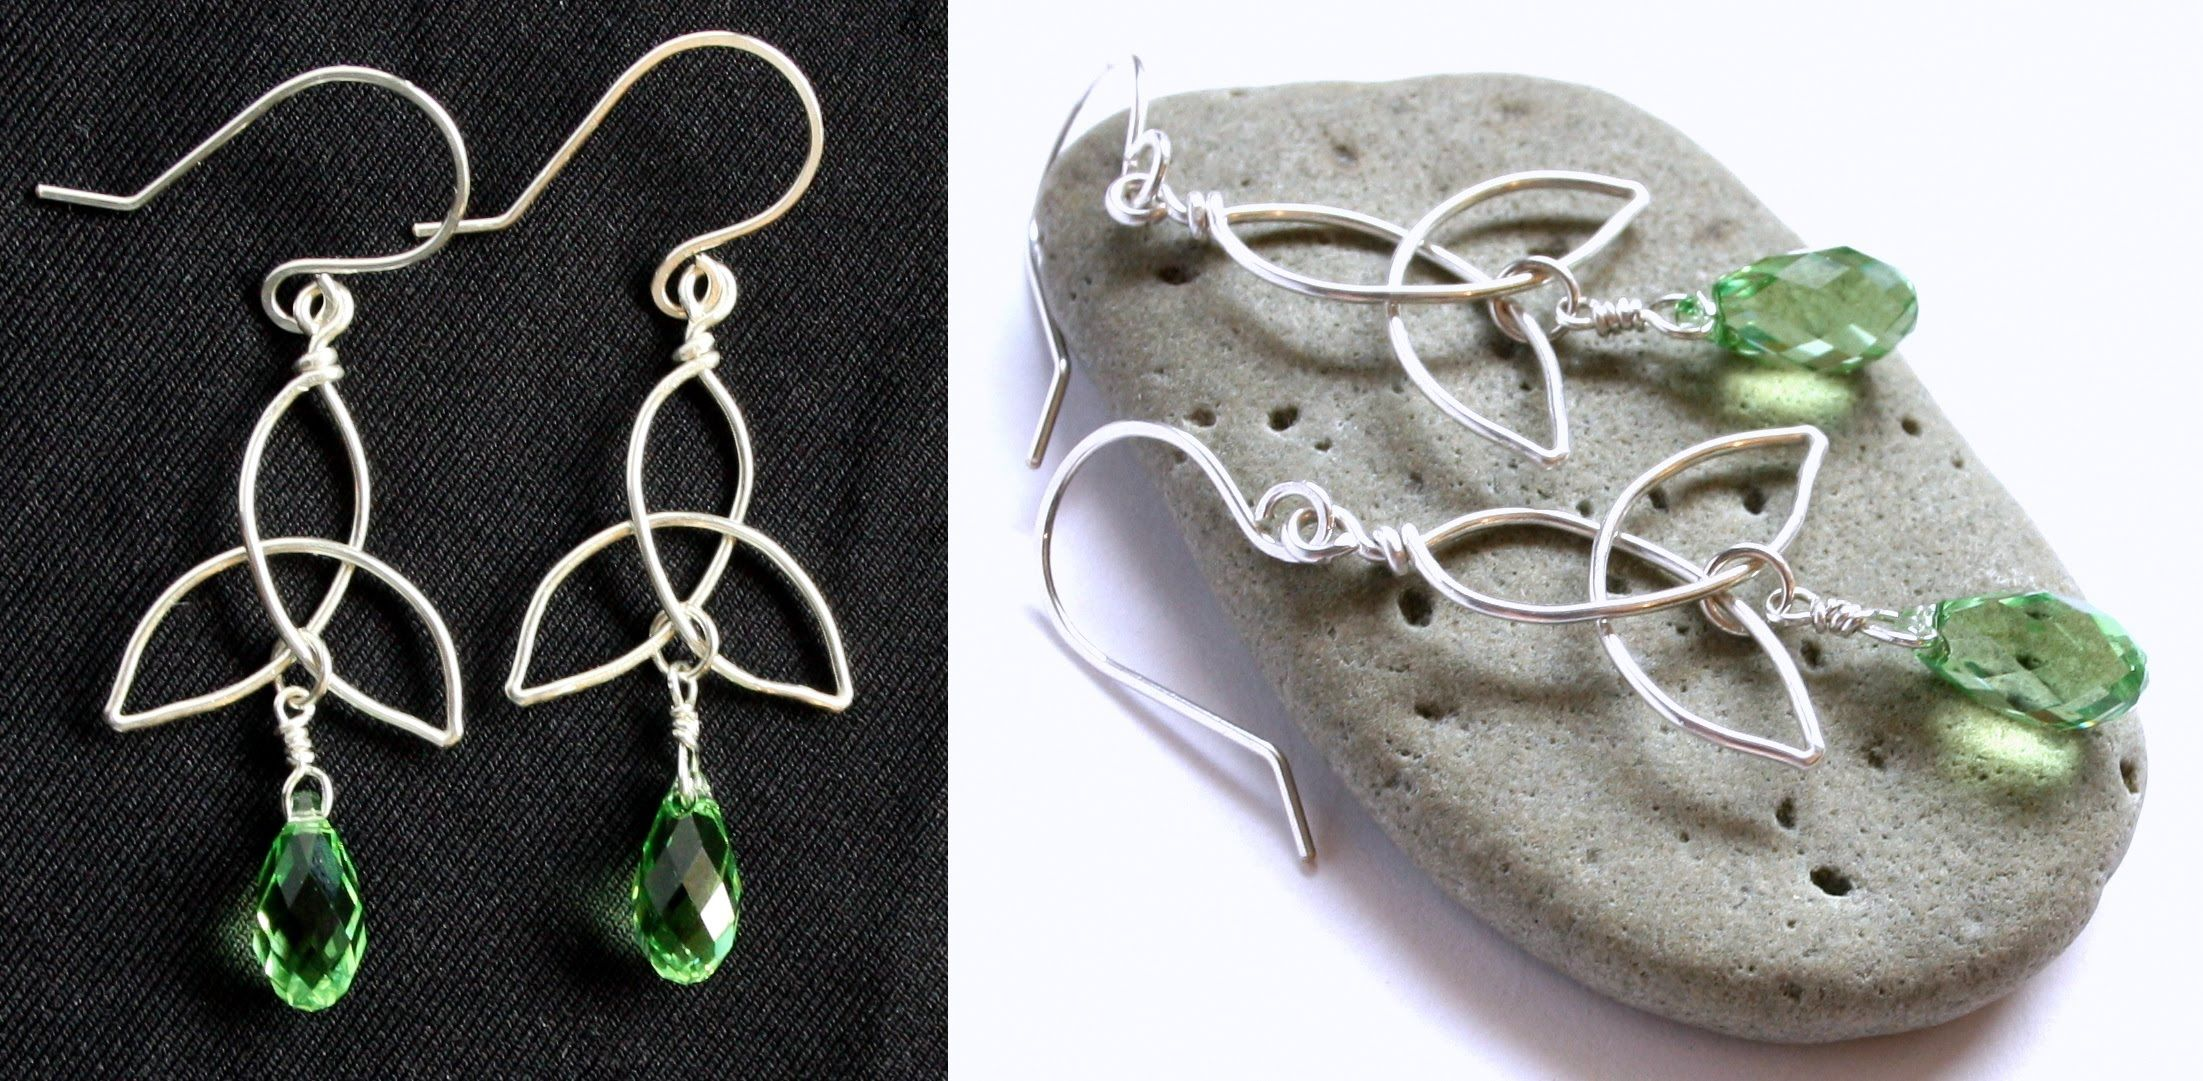 How to Make a Celtic Knot Charm : Easy Wire Wrapped Jewelry Tutorial ...